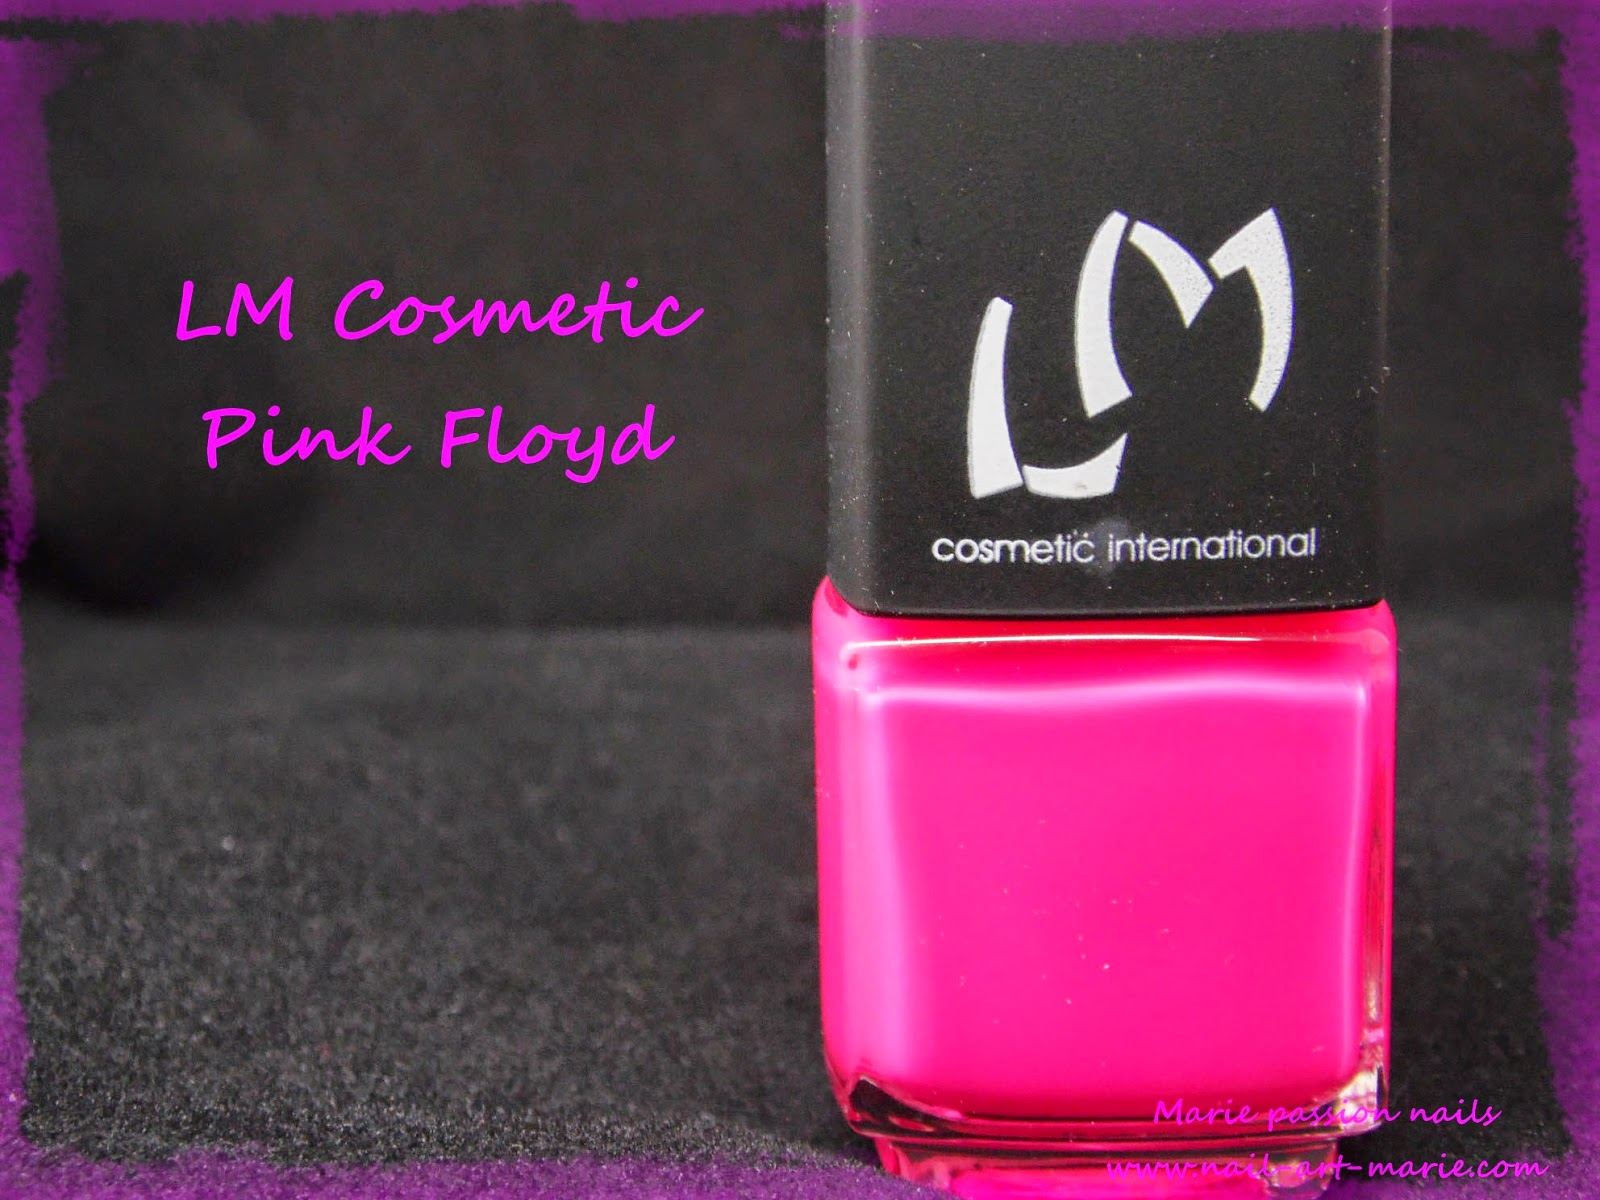 LM Cosmetic Pink Floyd1